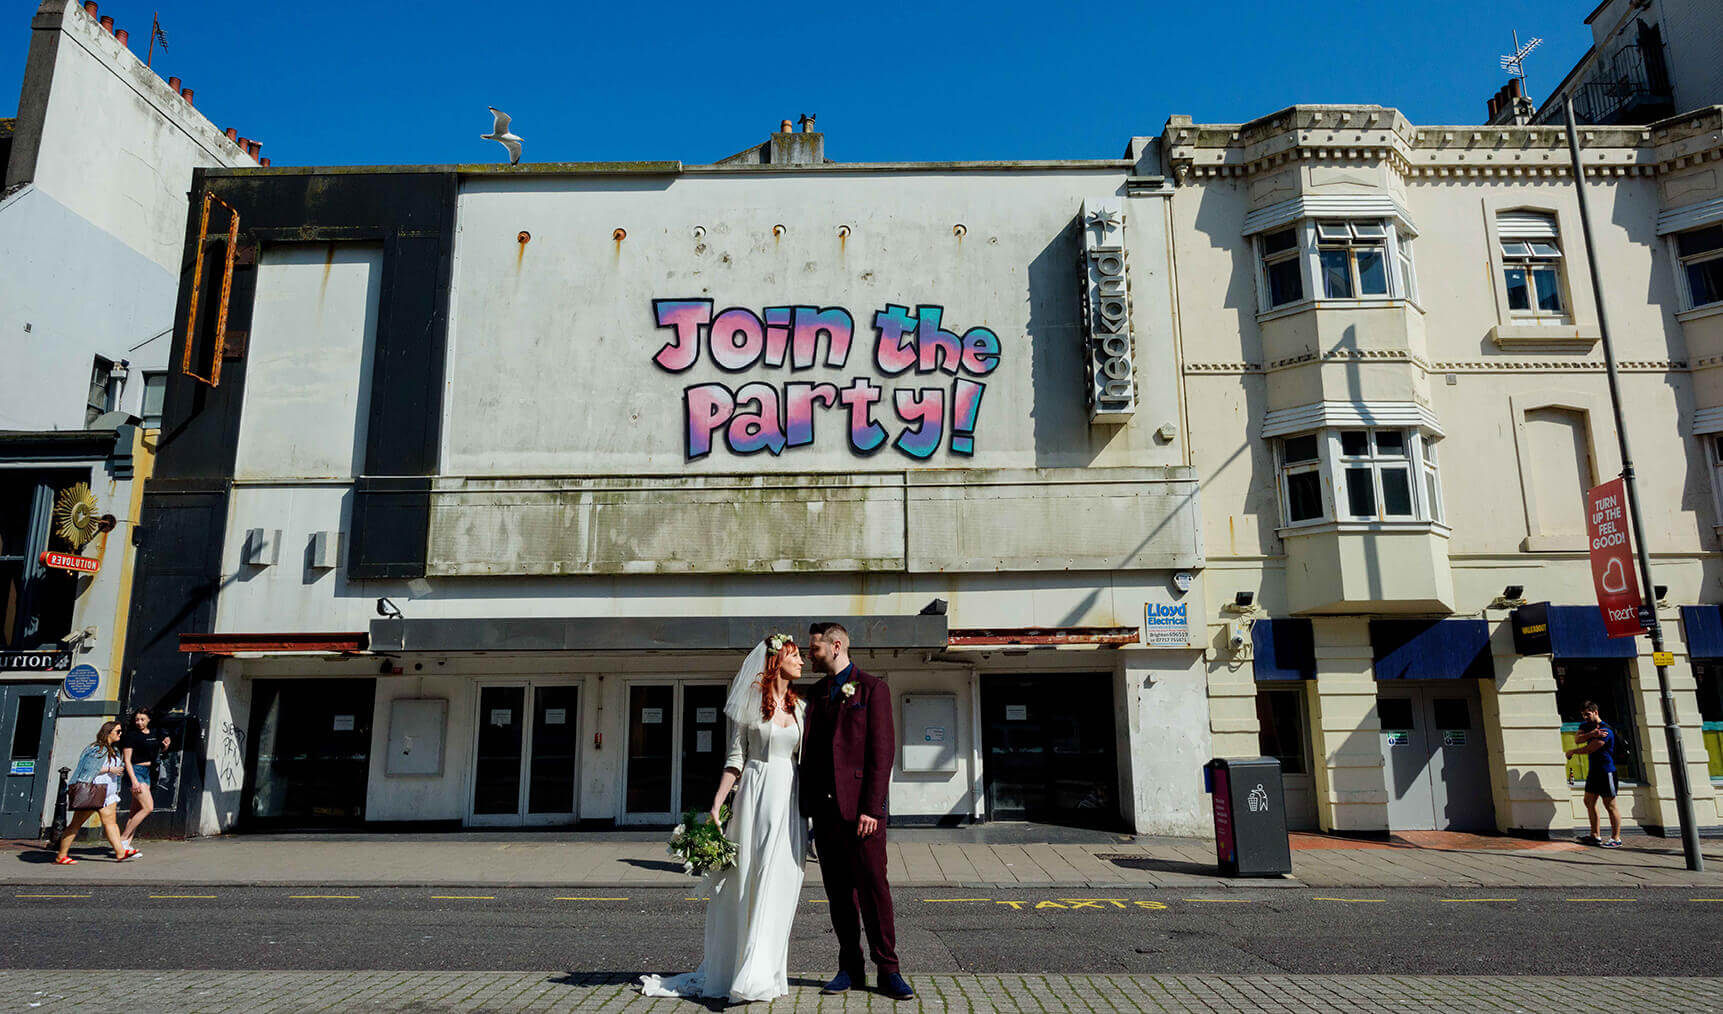 bride and groom on the street in front of a nightclub